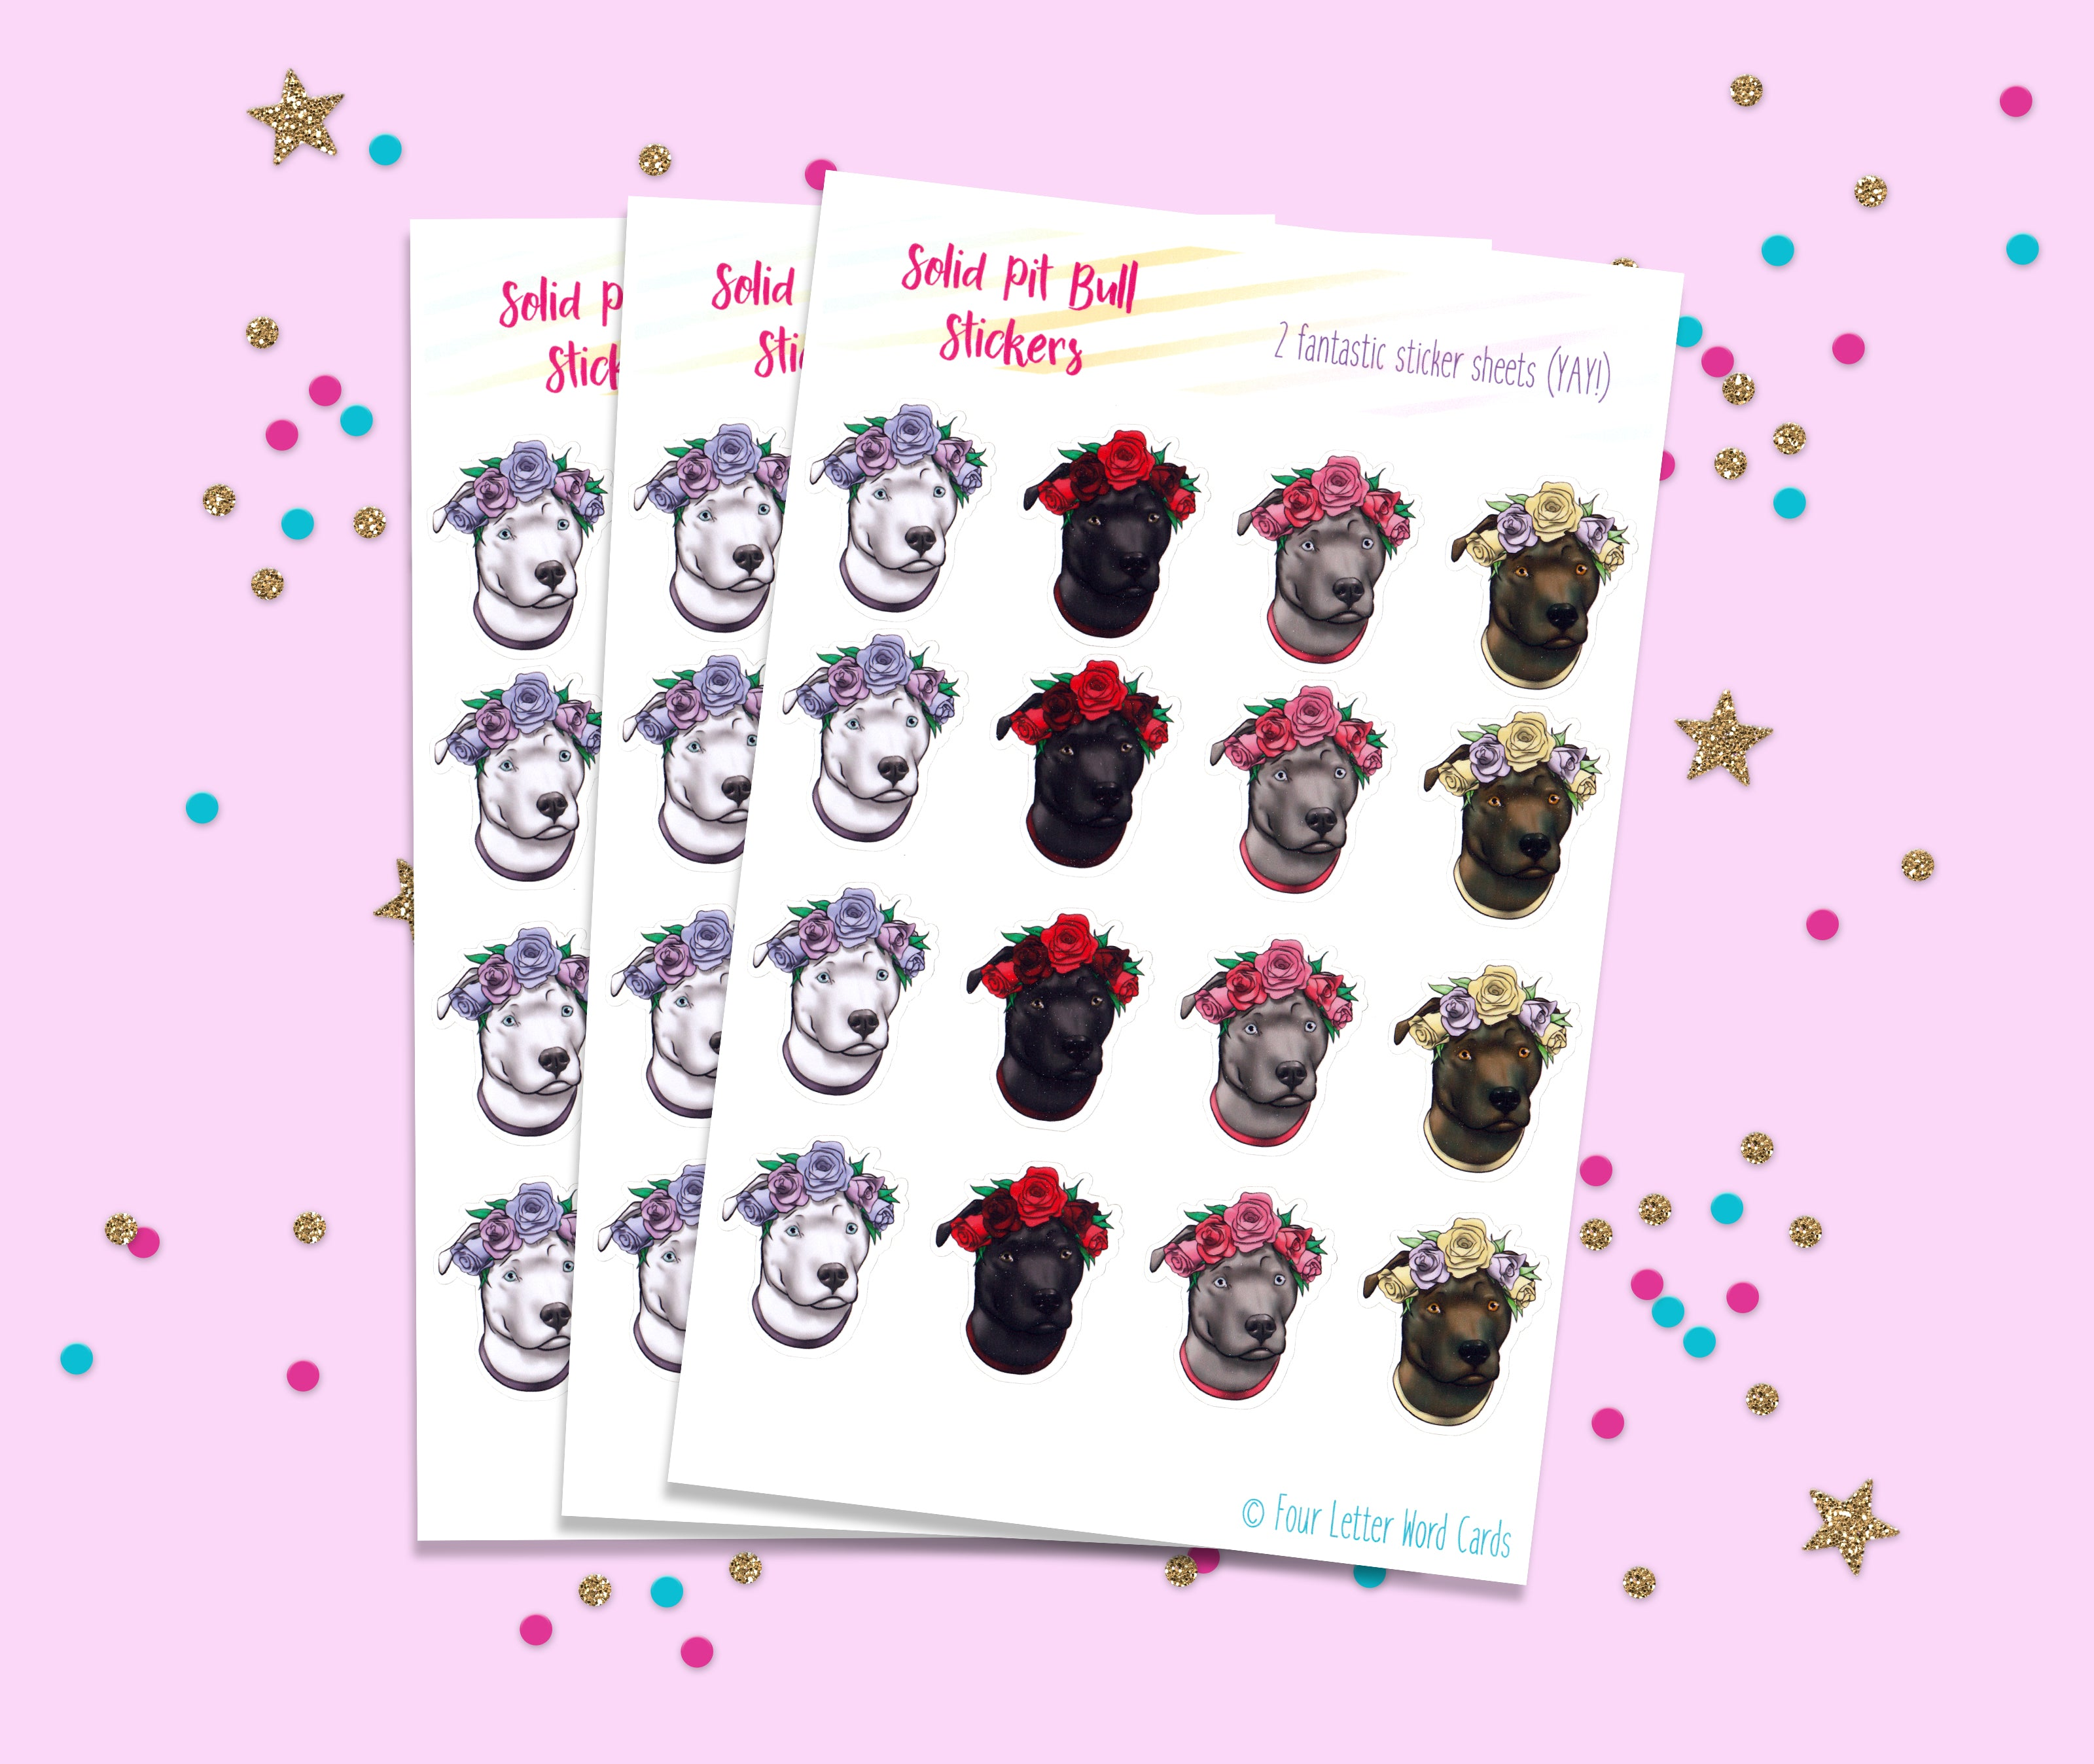 Solid Color Pit bull Flower stickers